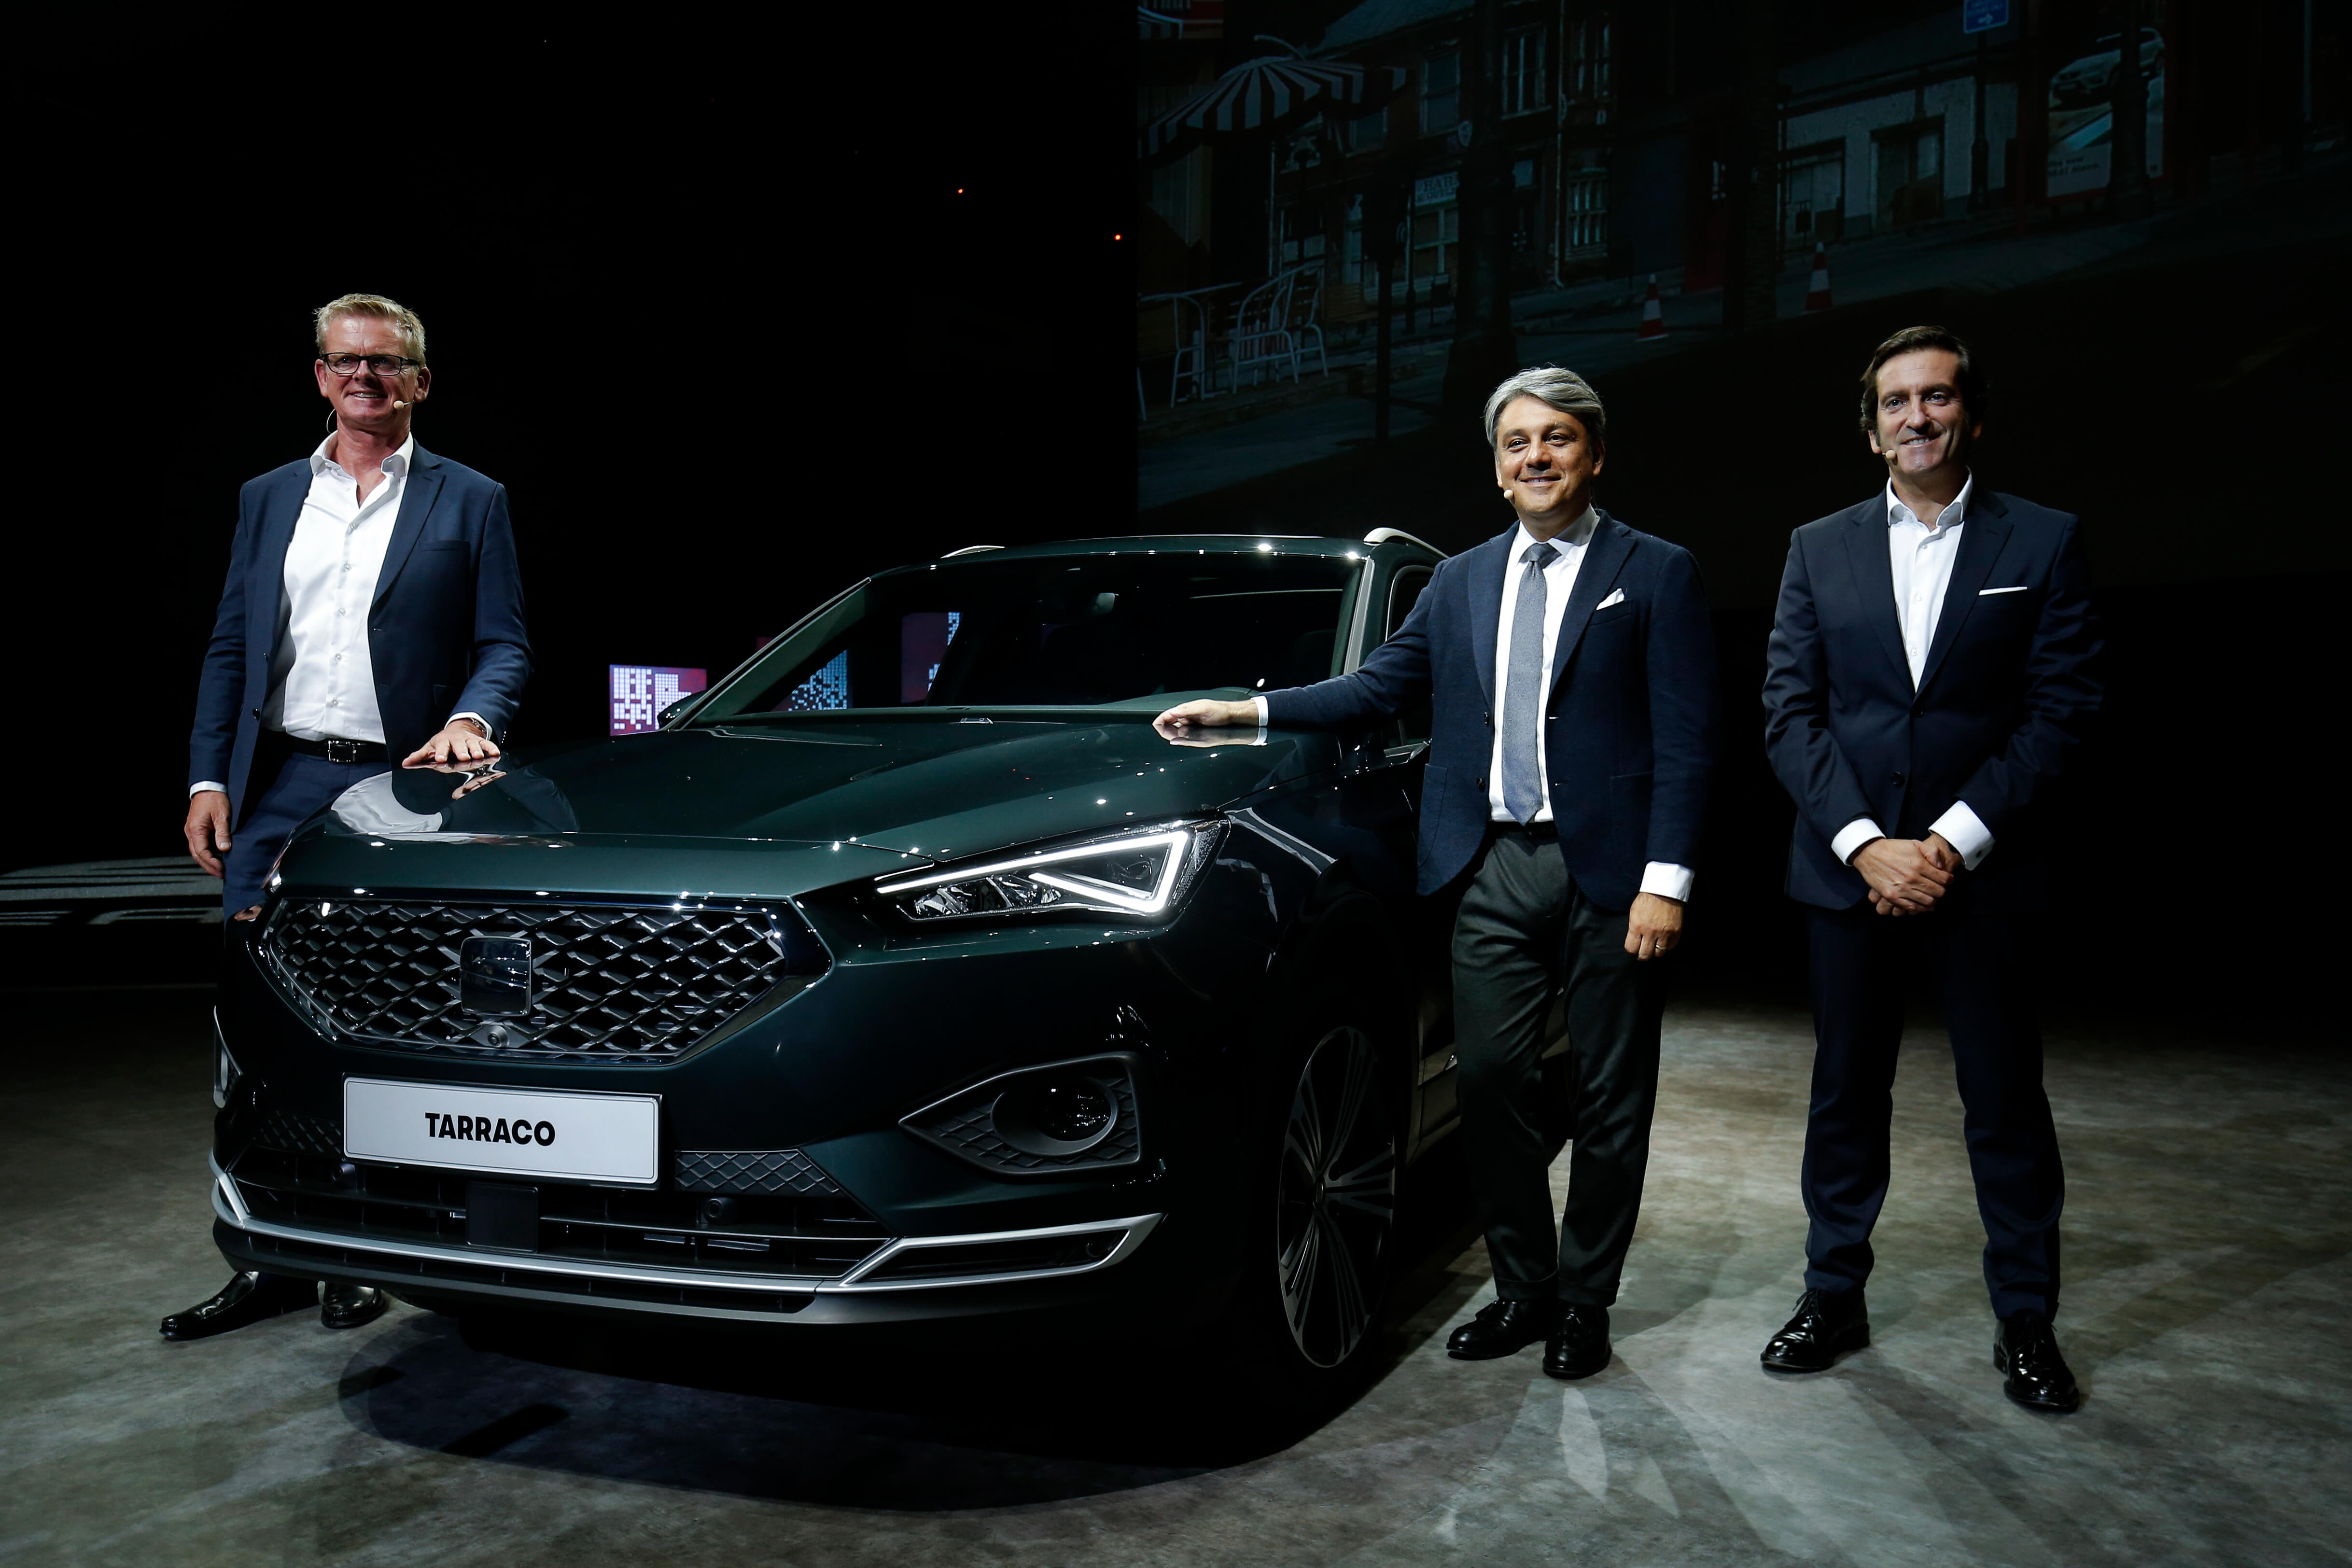 According to Spanish car maker SEAT, car manufacturers could be a big 5G consumer in the near future. Source: PAU BARRENA / AFP